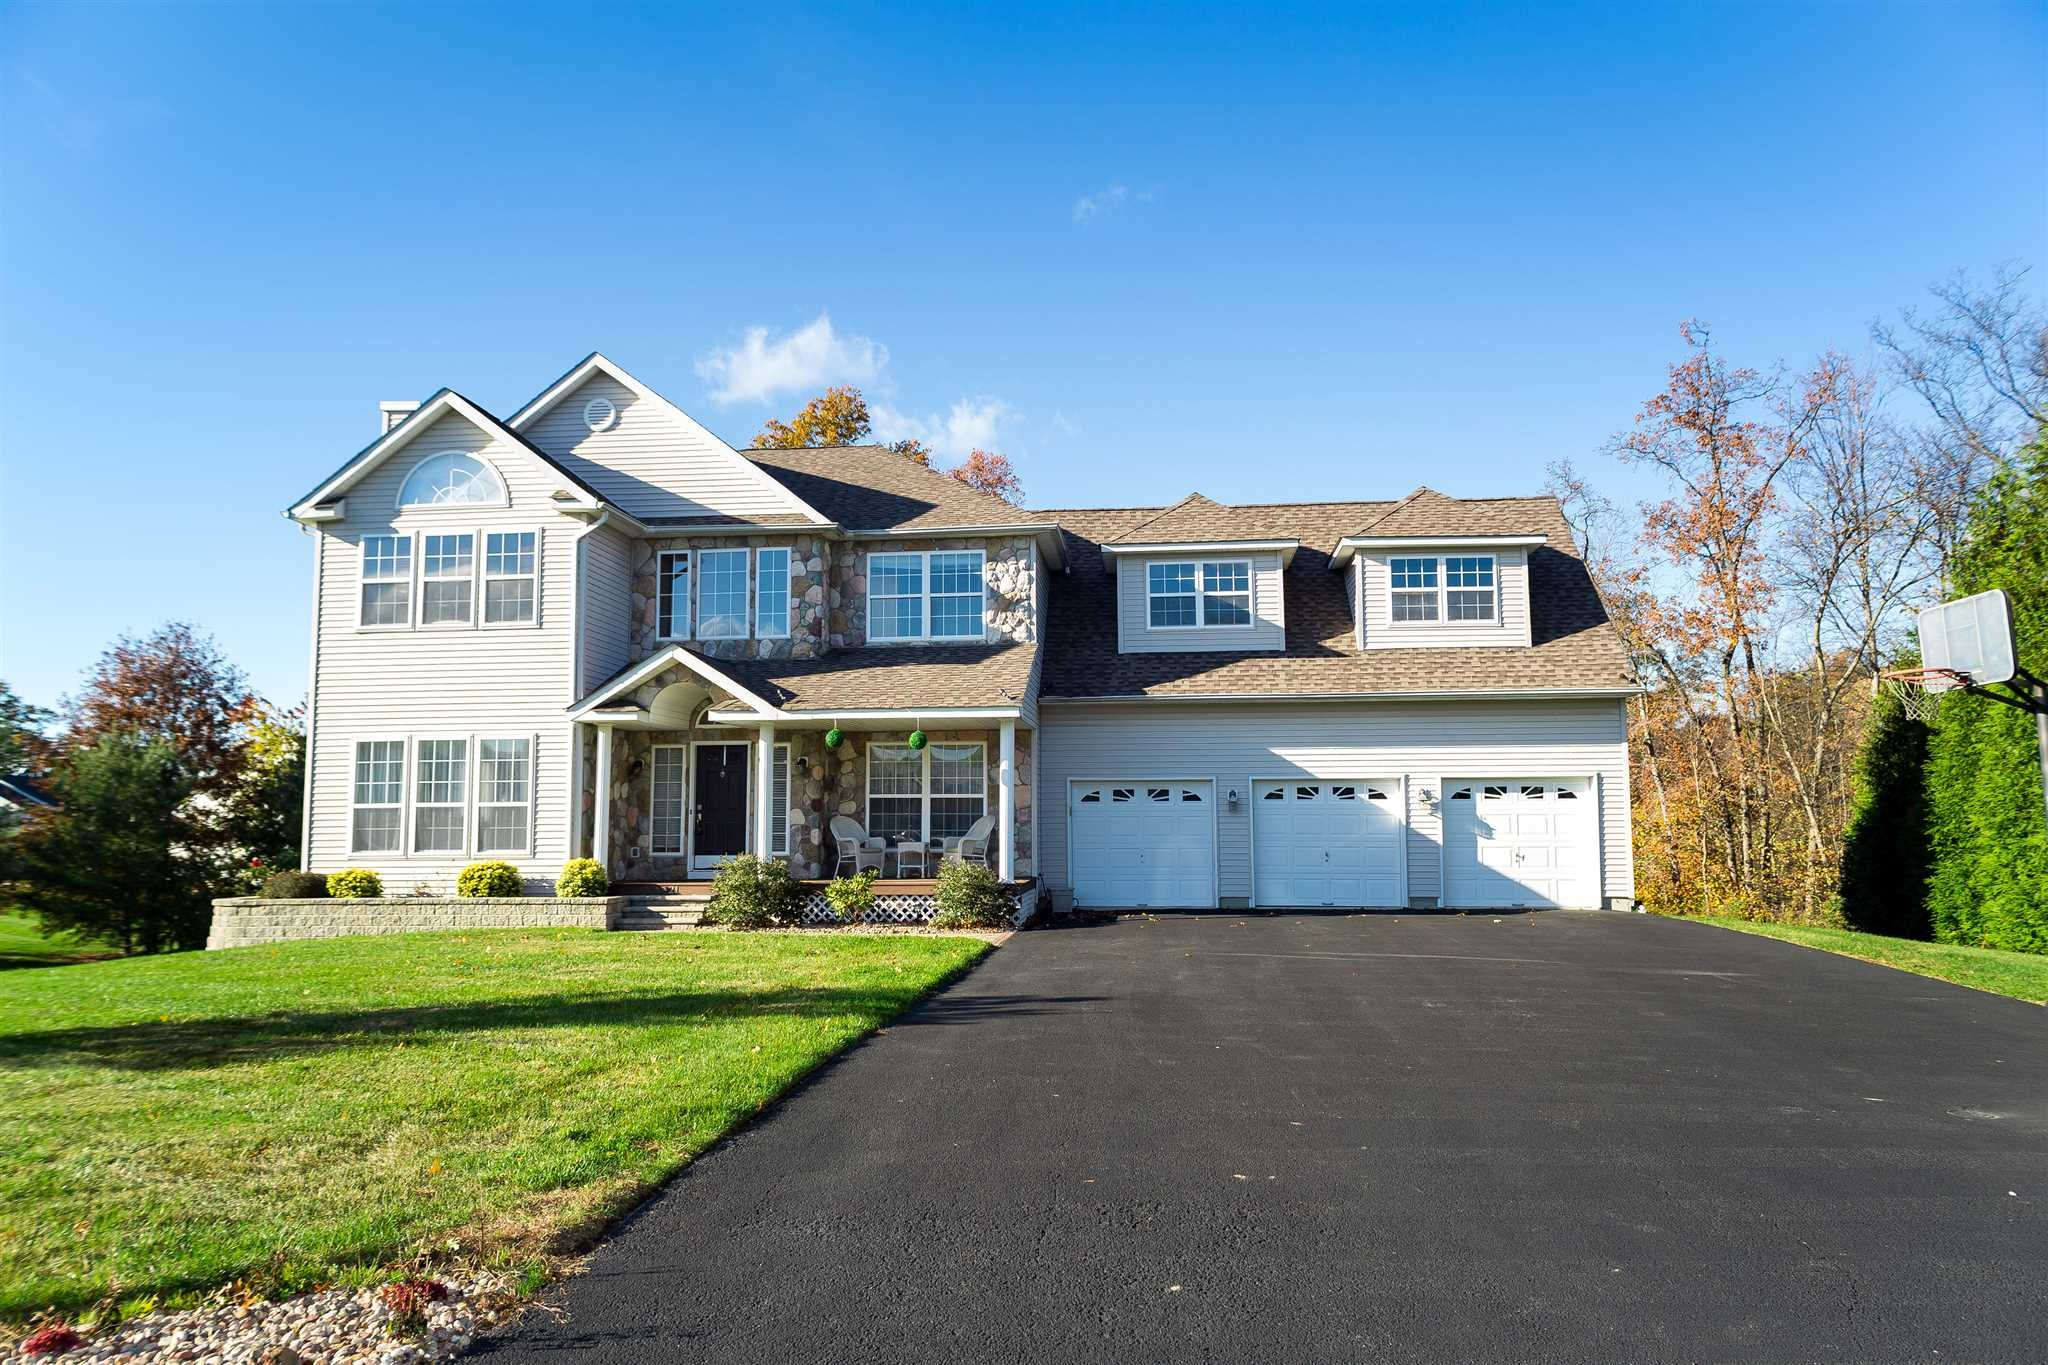 Single Family Home for Sale at 21 BARBERRY 21 BARBERRY Fishkill, New York 12590 United States